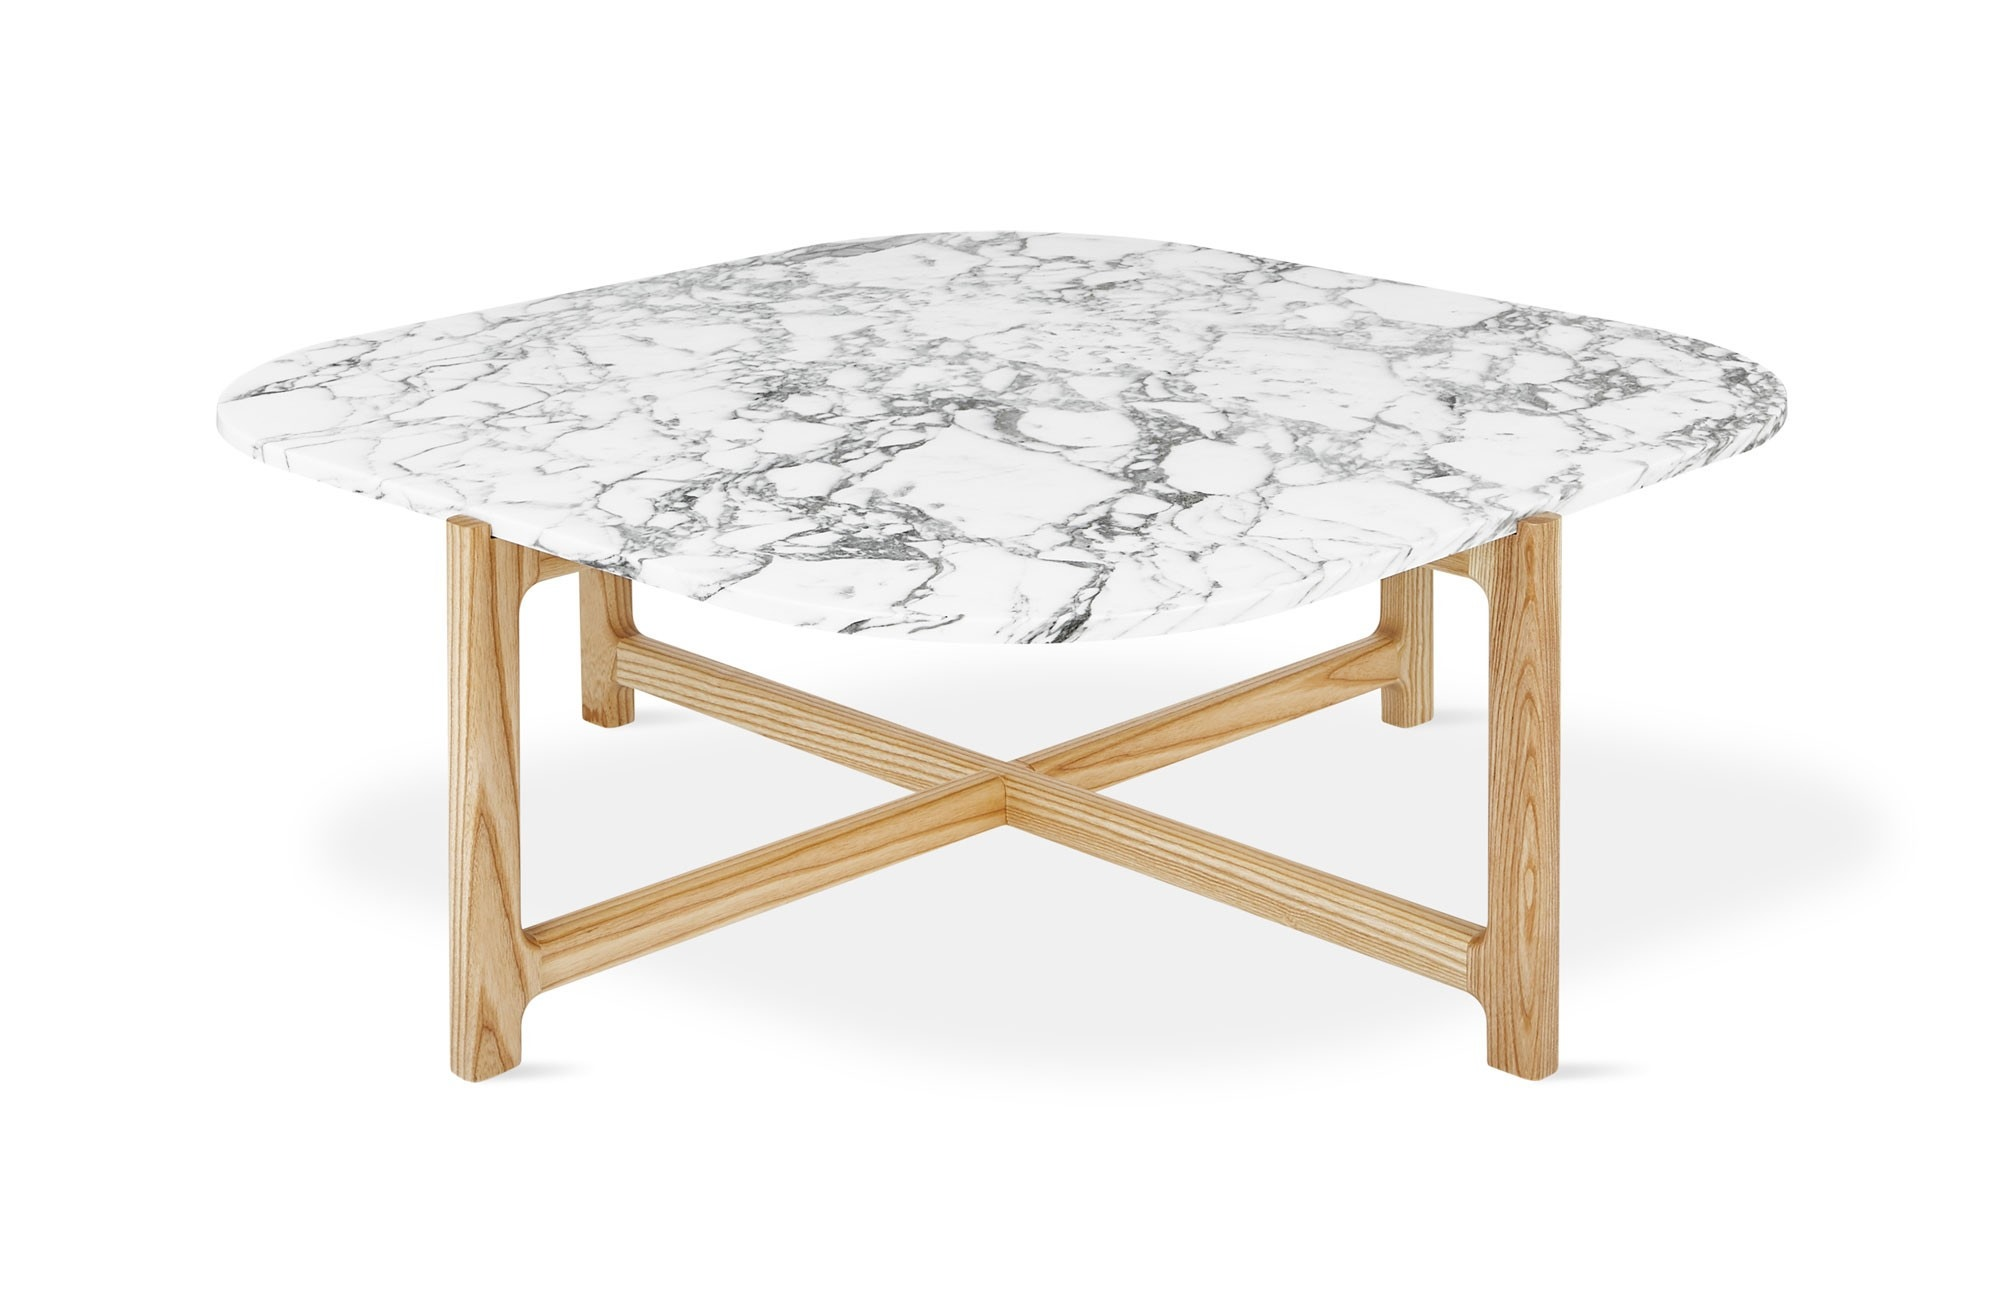 Gus* Modern Quarry Coffee Table - Square